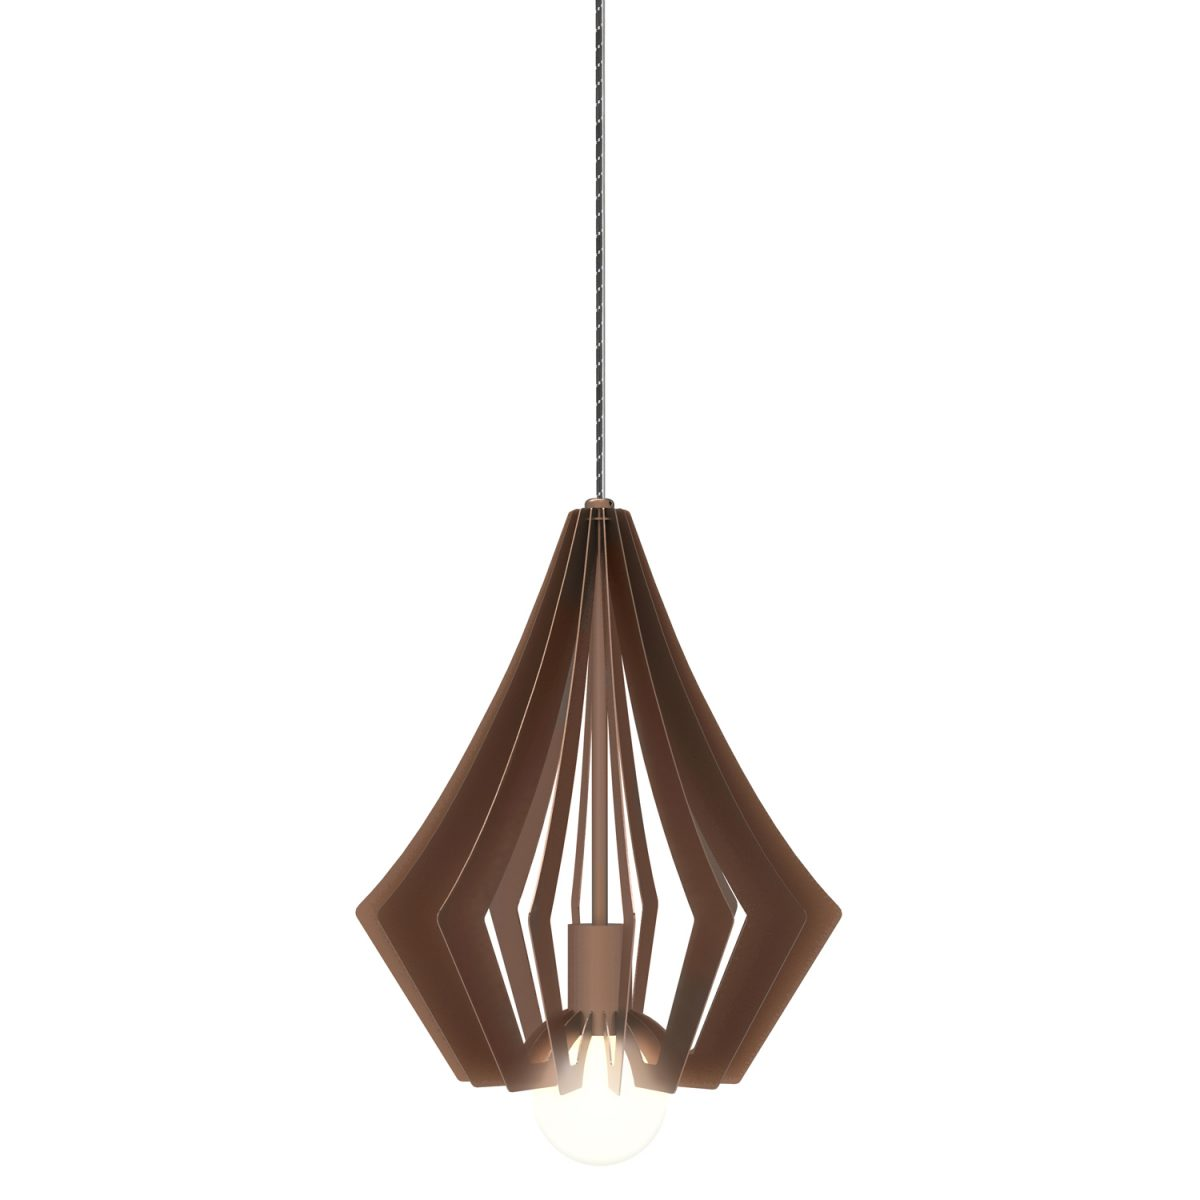 JSPR Beaudine I Bronze Opaque Dutch Design Verlichting